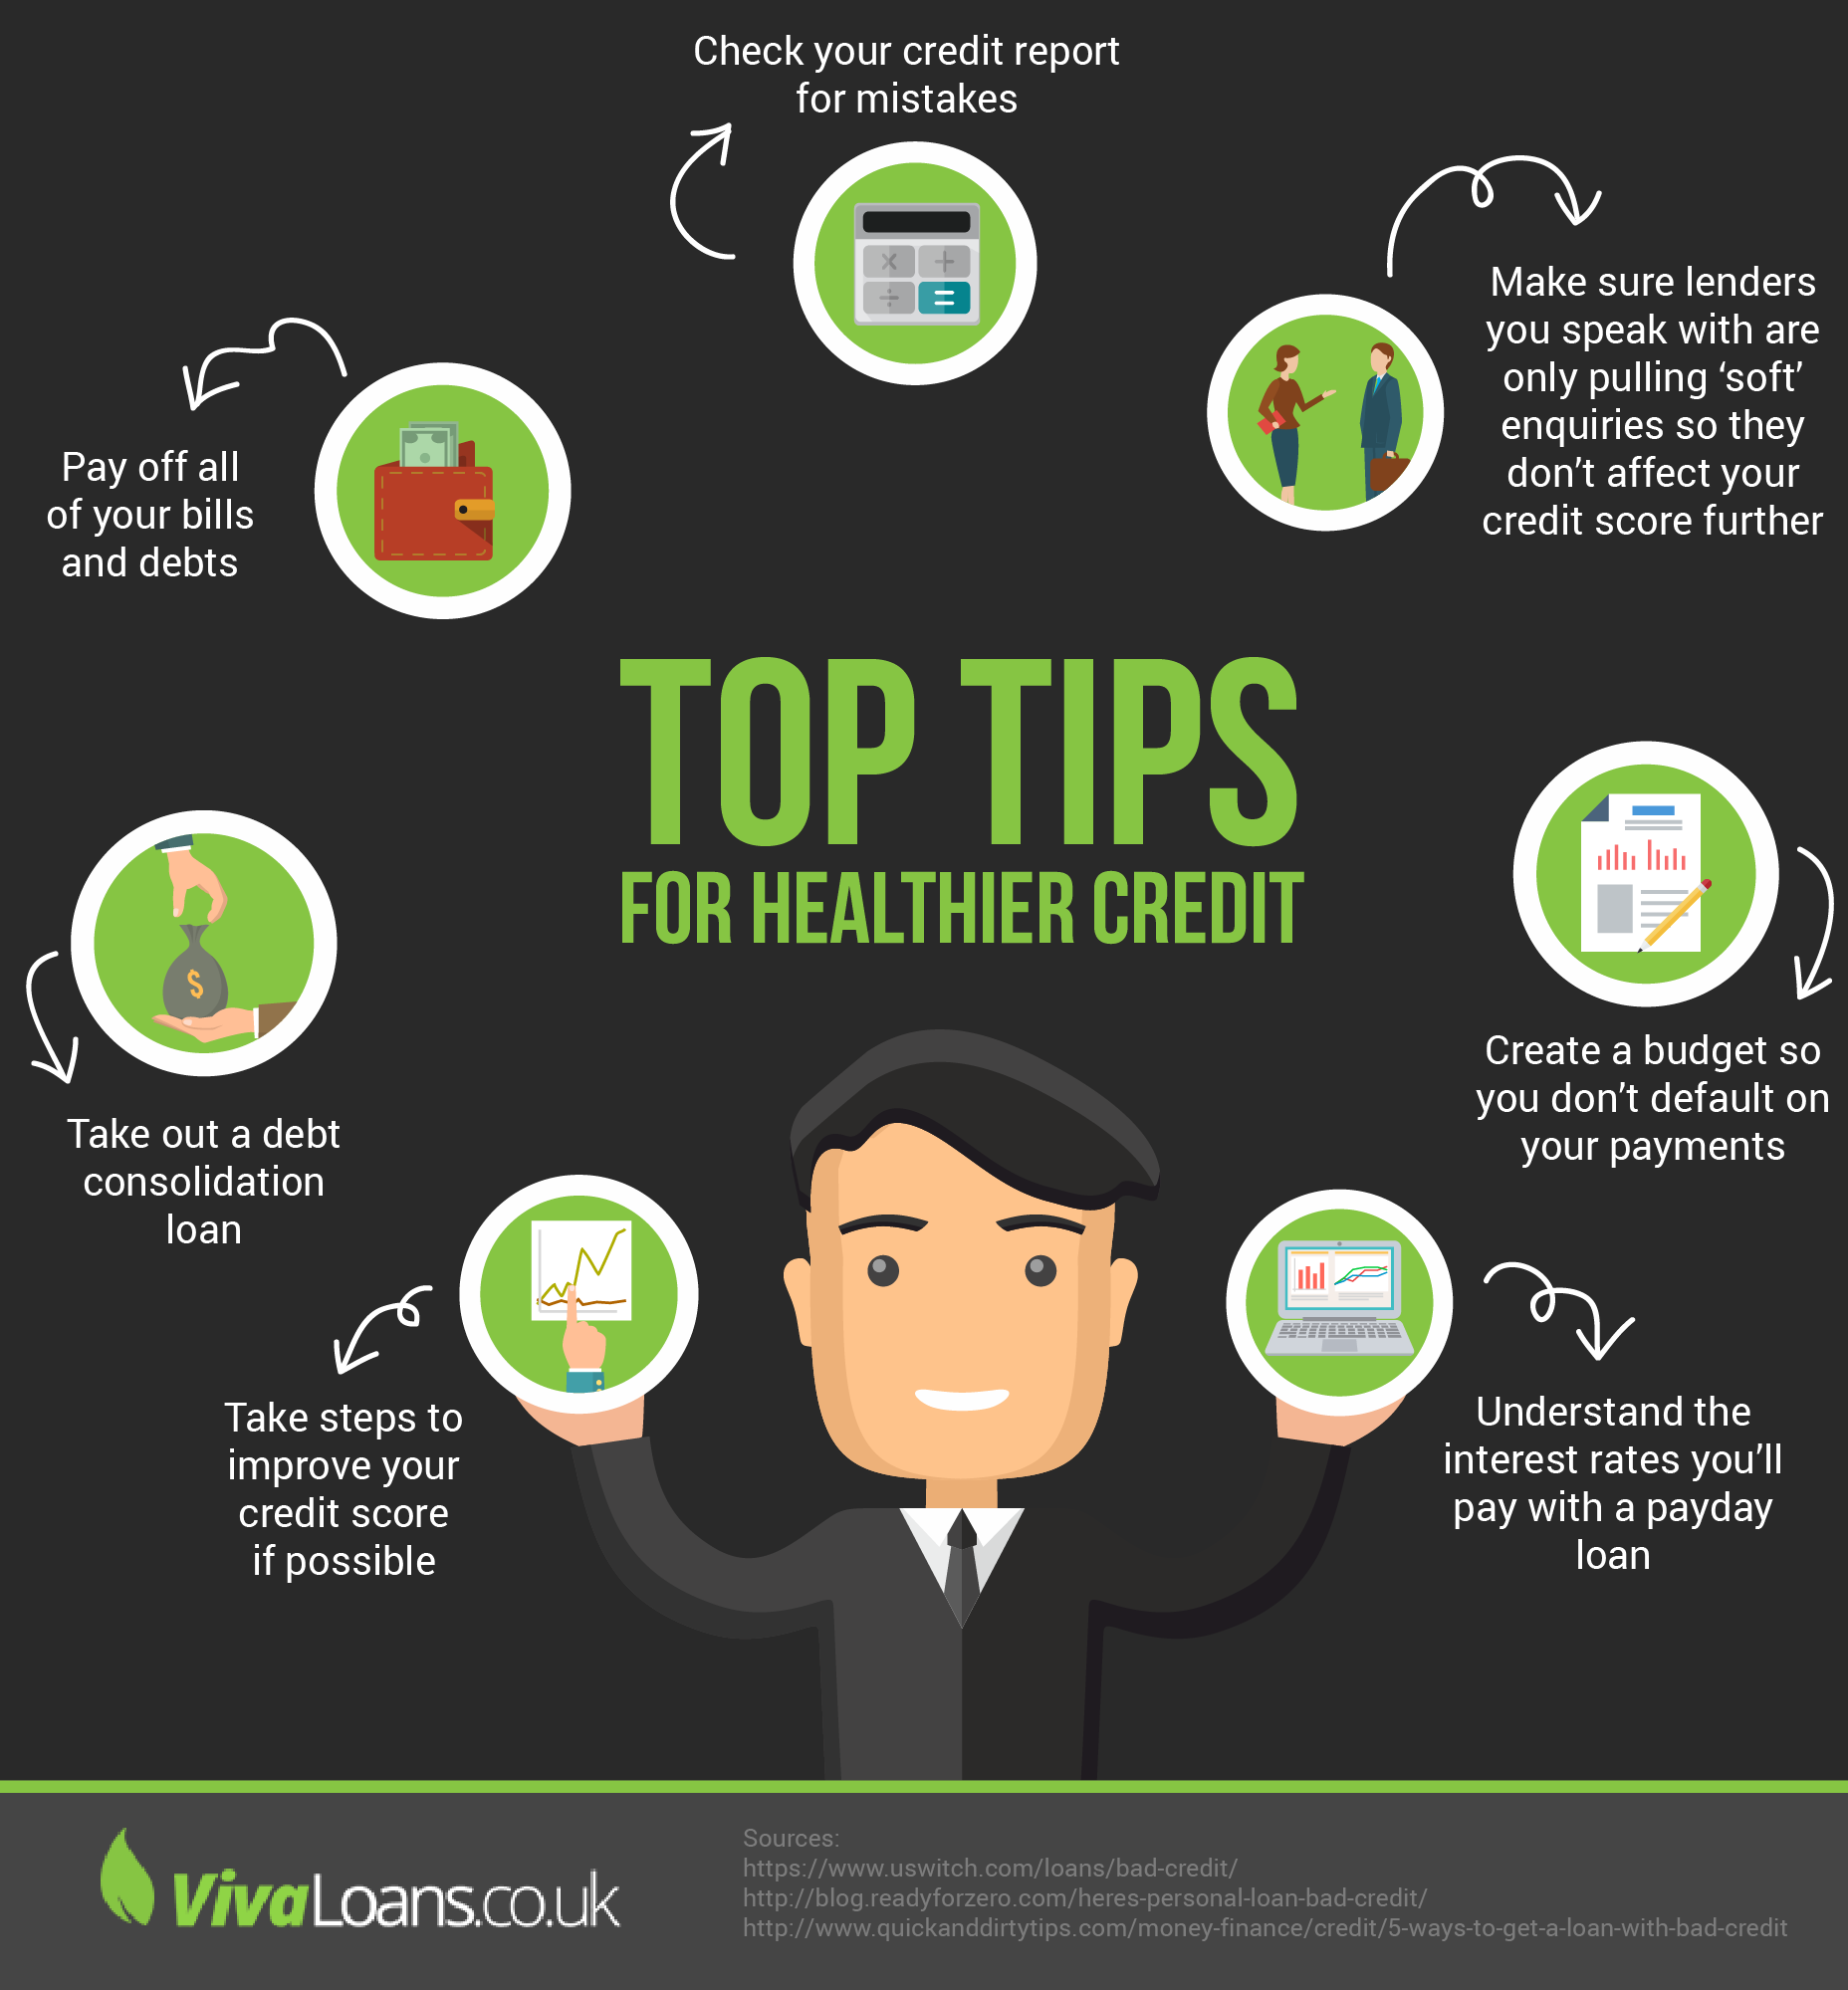 Top Tips for Healthier Credit Score